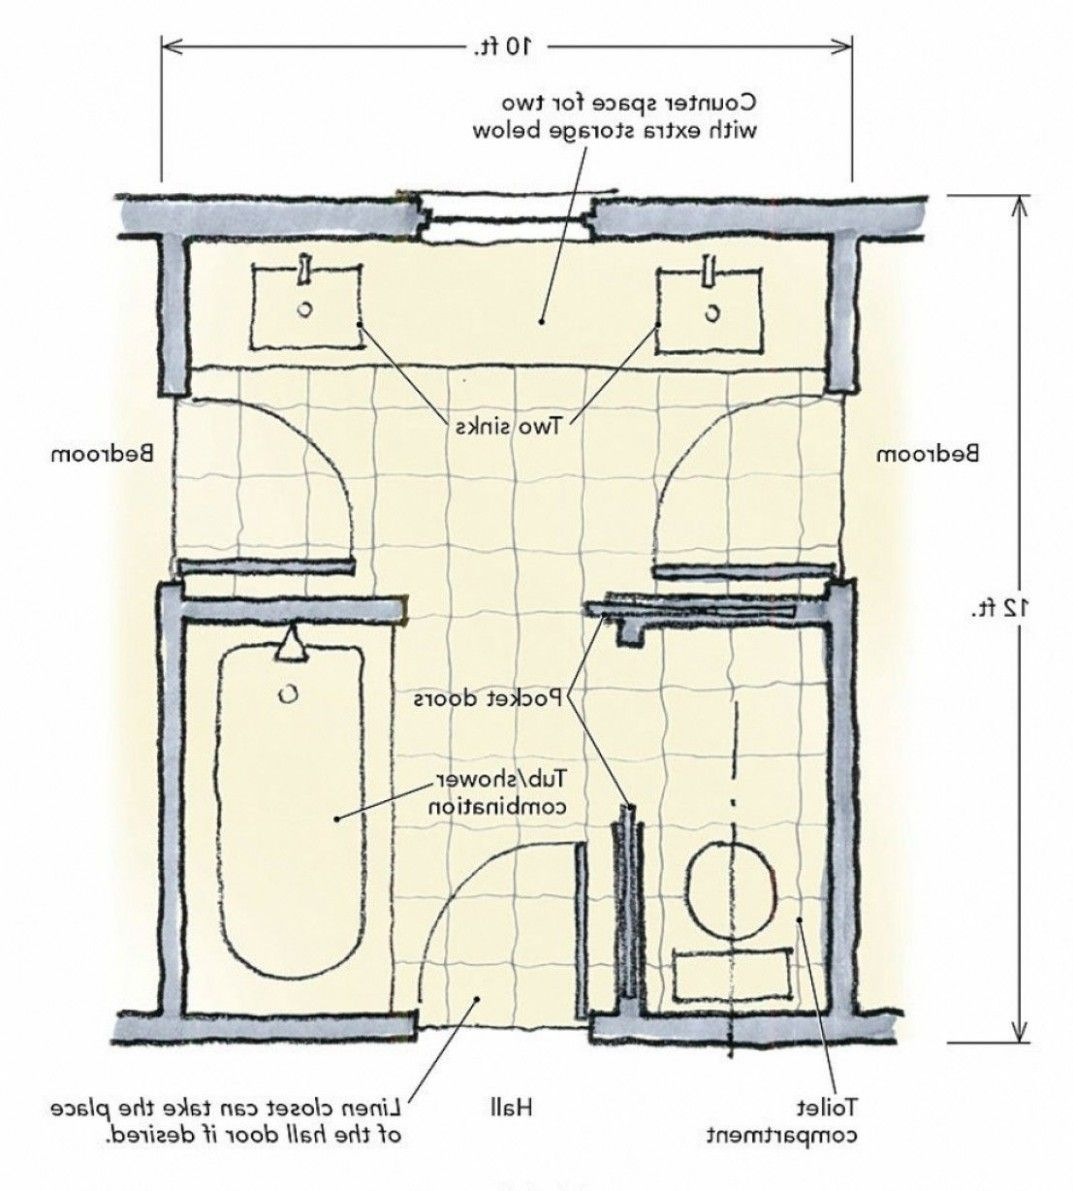 Jack And Jill Bathroom Floor Plan Ideas Jack And Jill Bathroom Bathroom Floor Plans Bathroom Plans